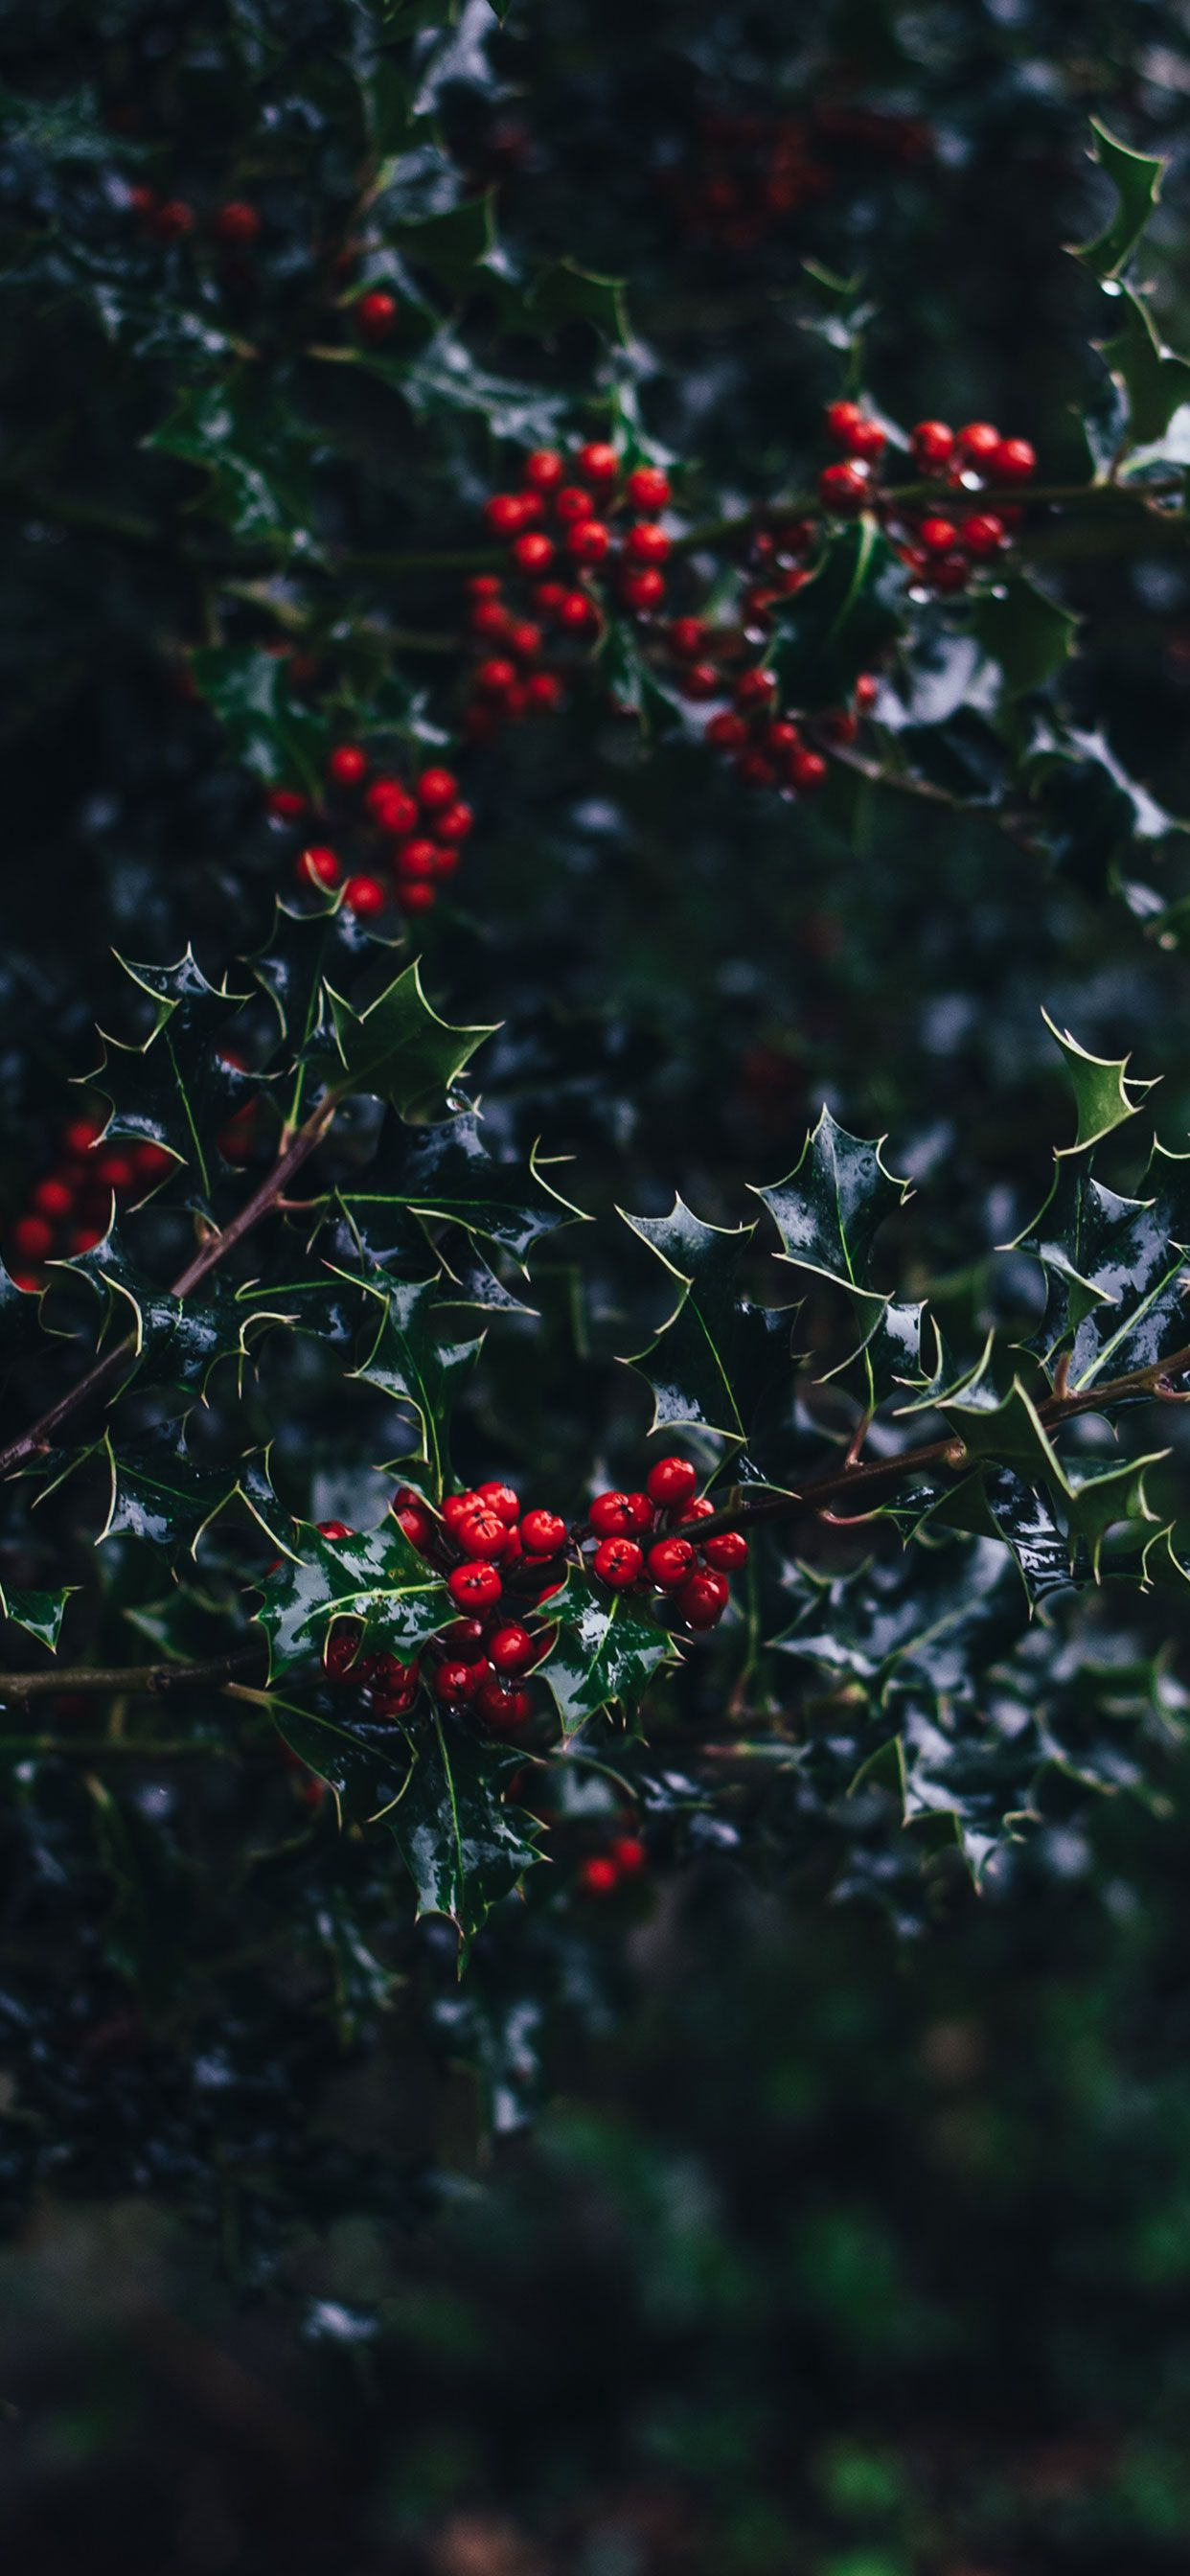 Red Aesthetic Christmas Wallpapers Top Free Red Aesthetic Christmas Backgrounds Wallpaperaccess